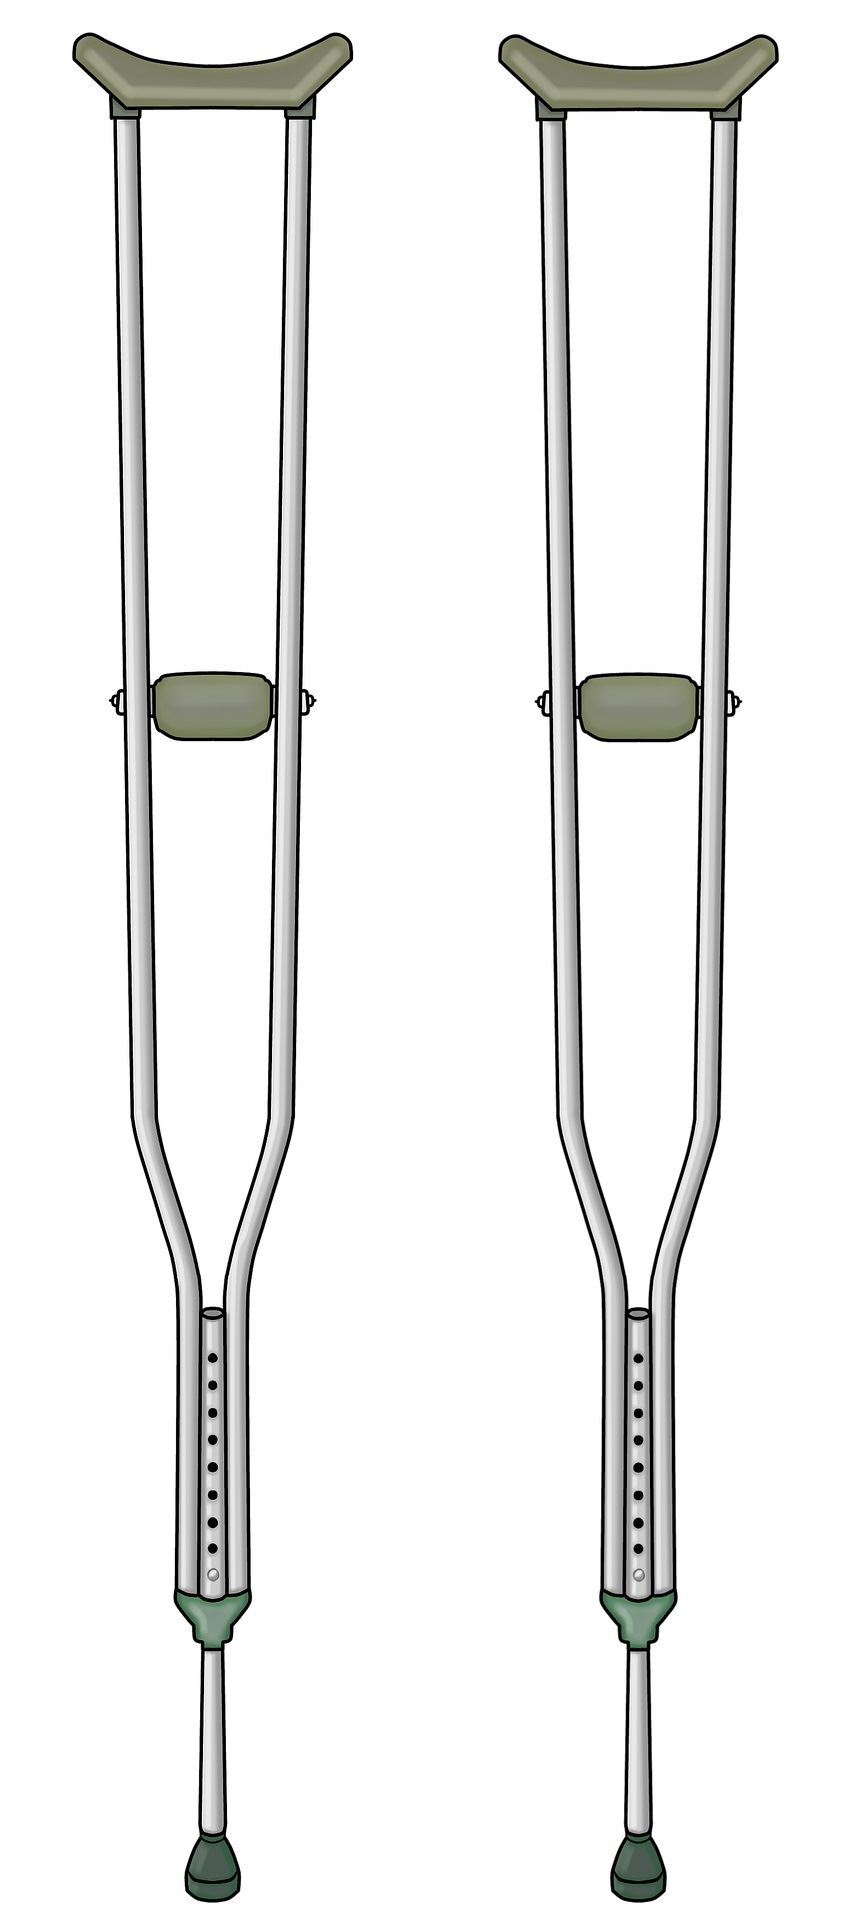 Pair of crutches